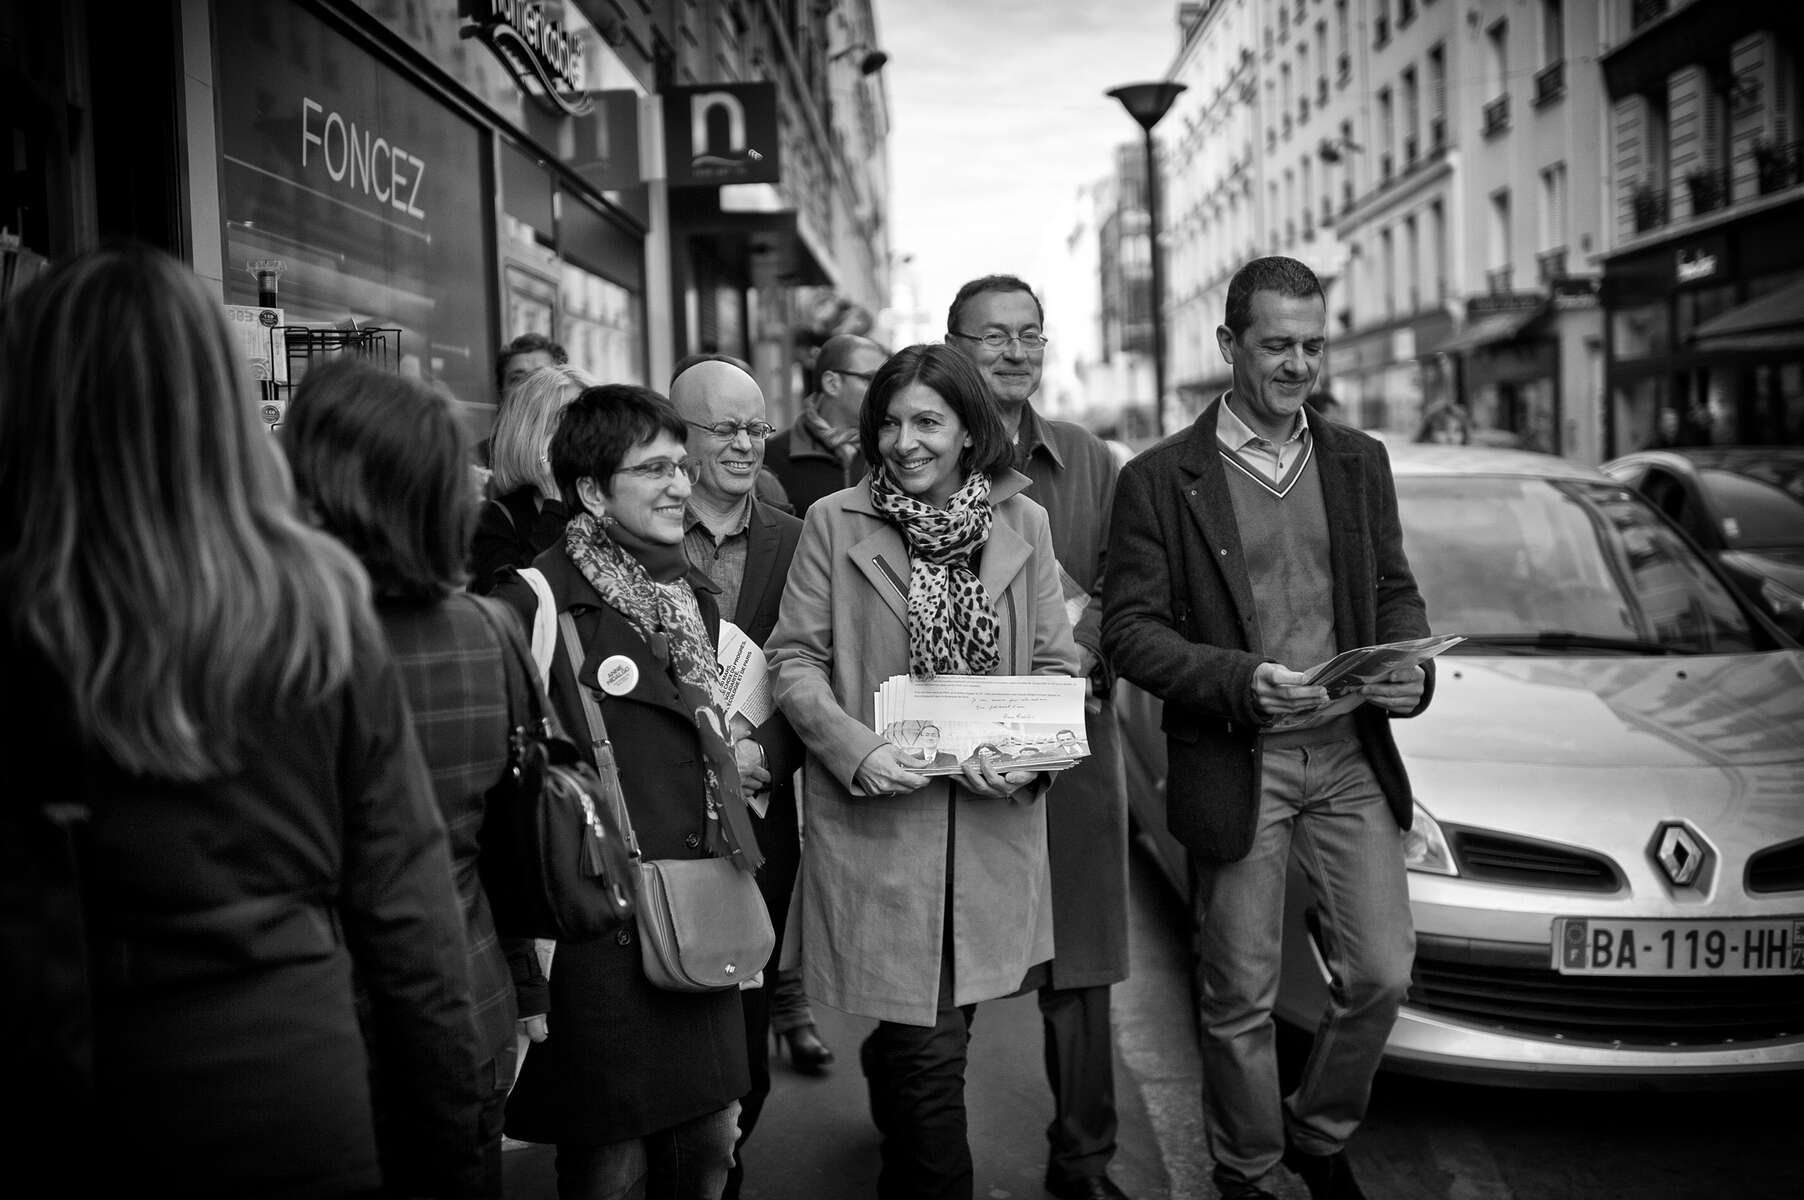 March 15, 2014.  PARIS, FRANCE- Mayoral candidate Anne Hidalgo chats with voters in her home district of the 15th arrondissement.   For the first time in France's history, Paris will have a woman as a mayor - either Socialist Anne Hidalgo or Center-Right Nathalie Kosciusko-Morizet.  Photo by Scout Tufankjian